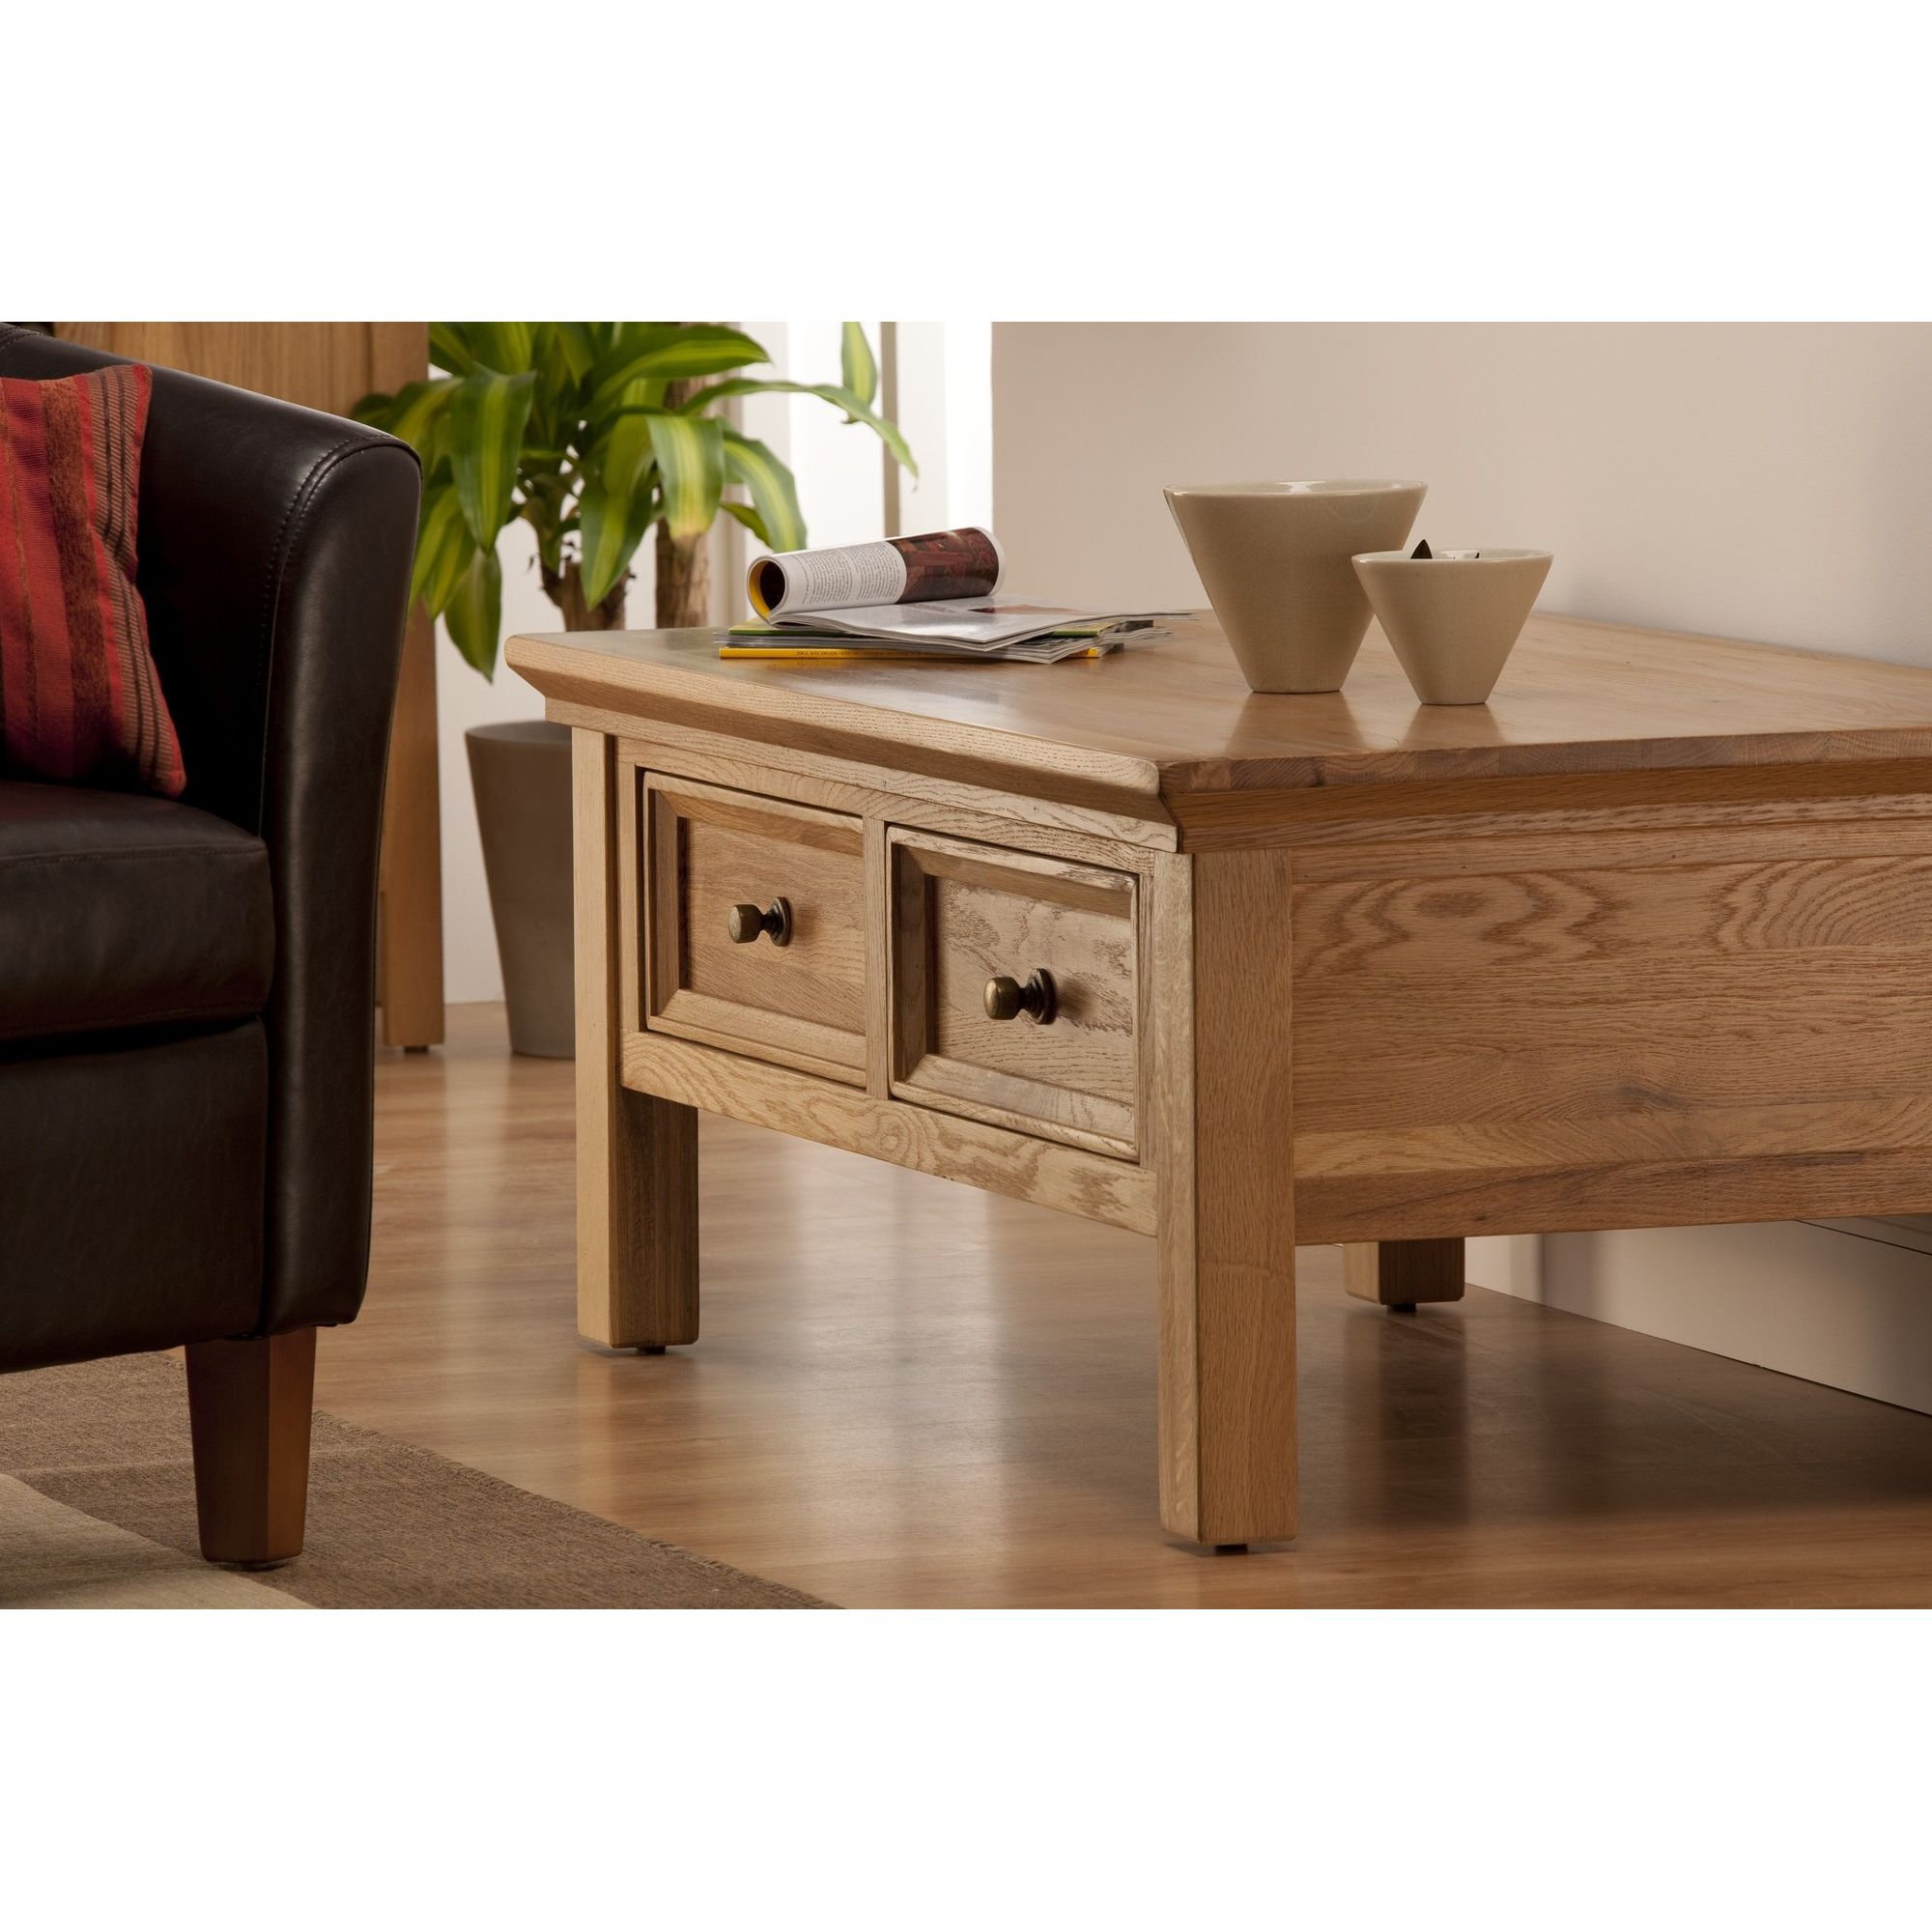 Home And Garden Furniture Home Essence Alexander Nest Of Tables In Natural Oak Veneer